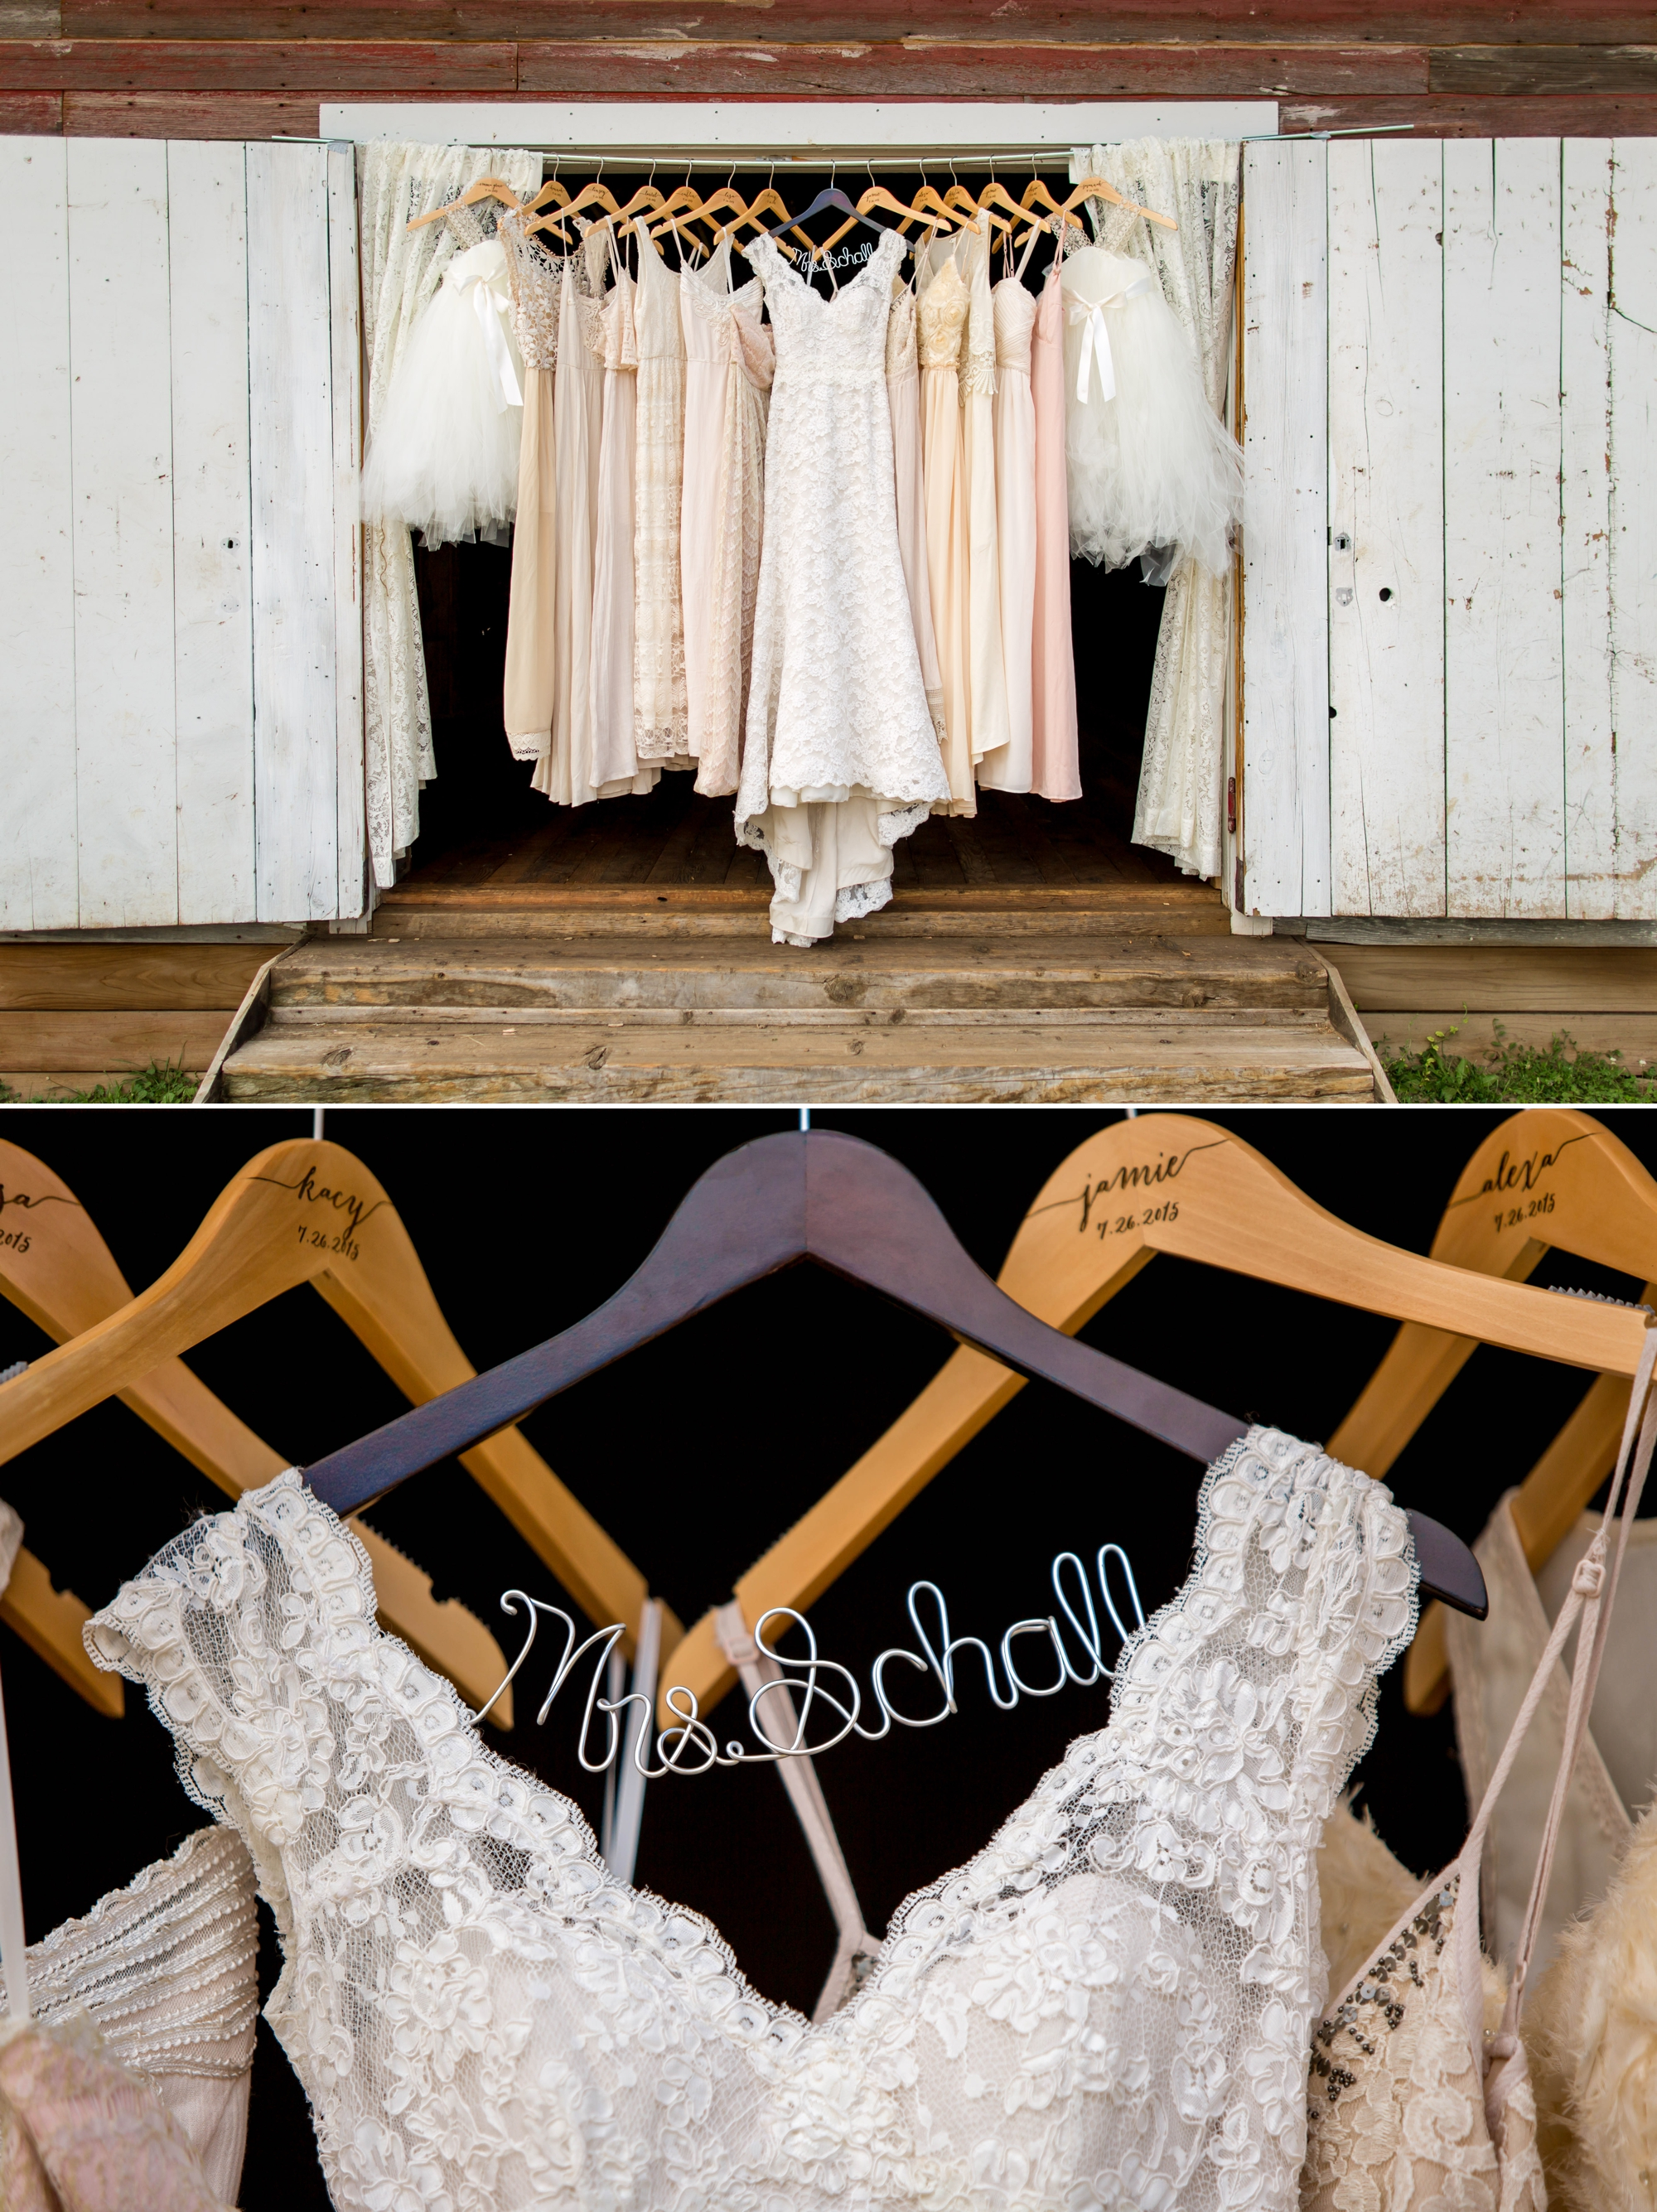 Loved the bridesmaids dresses!! Everything from the custom printed hangers, to the amazing colors. Stunning!